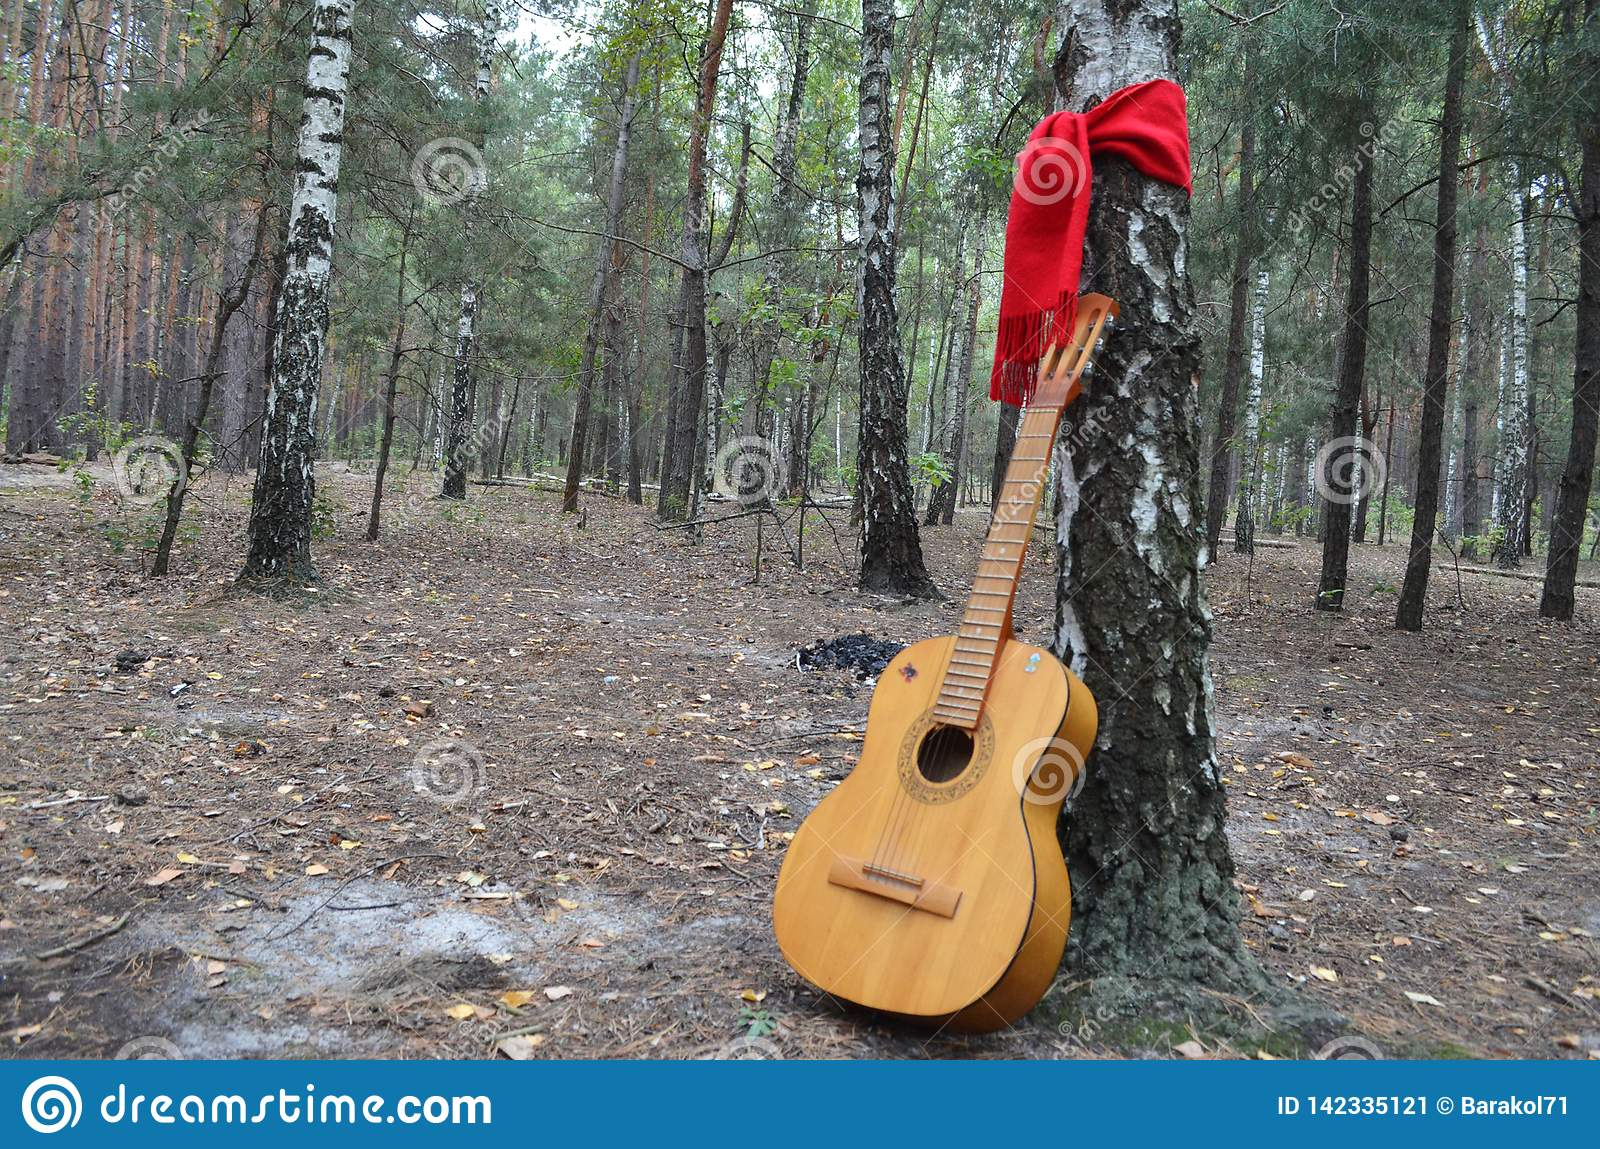 Guitar in the middle of the forest with a red scarf tied around